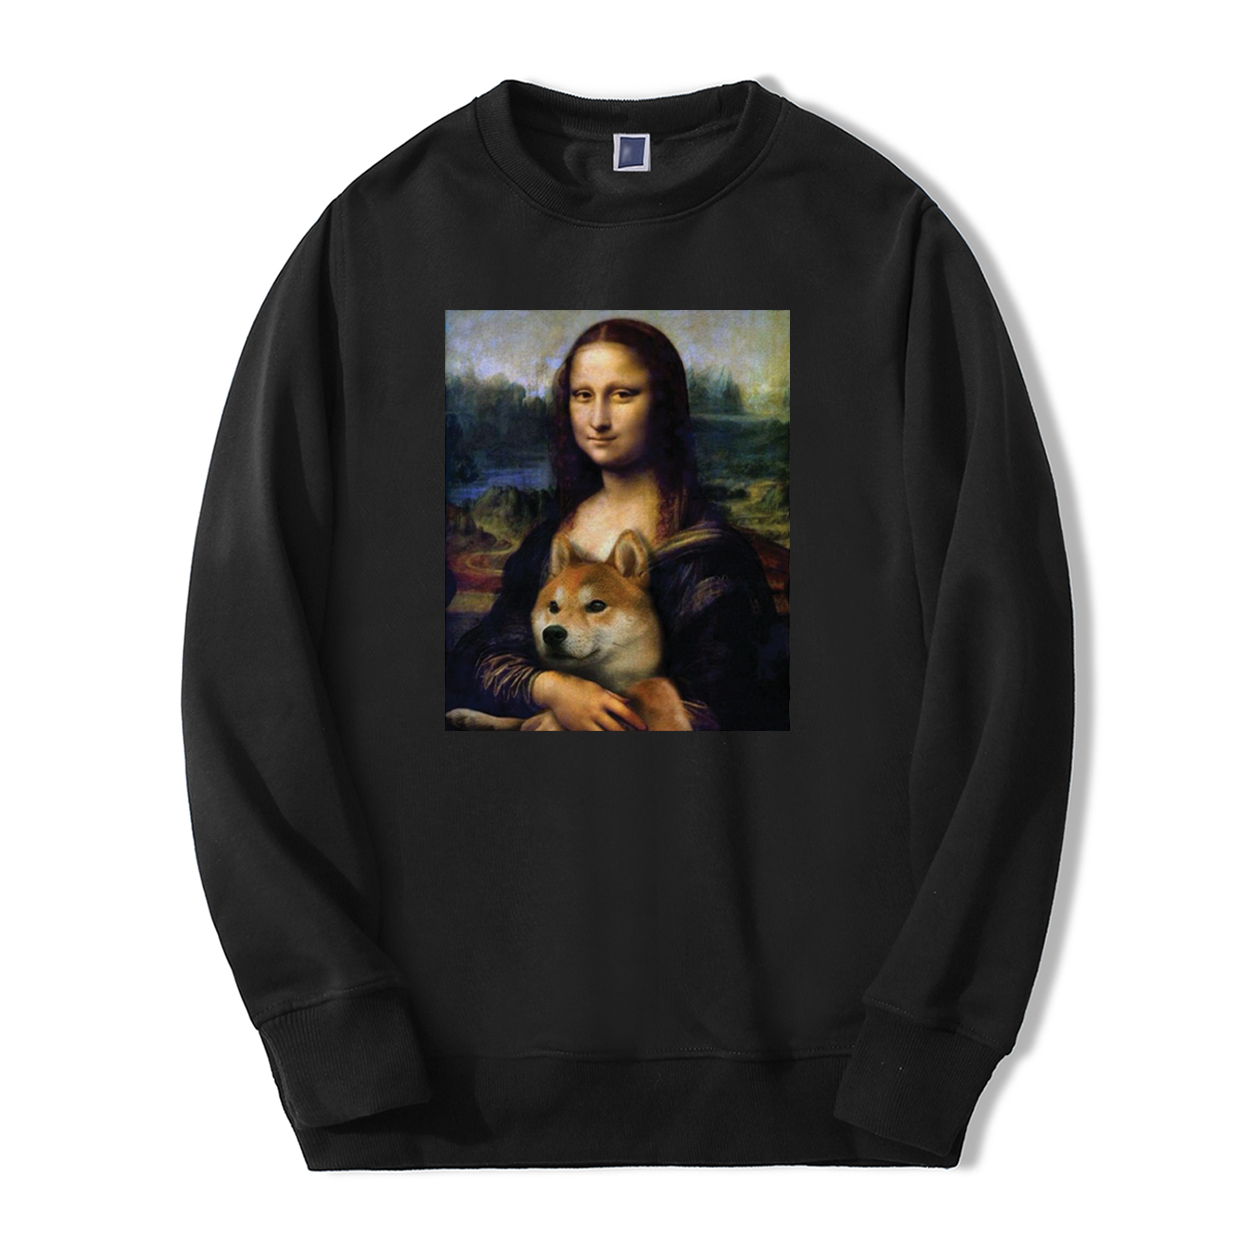 2019 Autumn Winter Hoodies Men Mona Lisa Shiba Inu Doge Tracksuit Fashion Men Fleece Casual Warm Animal Hip Hop Sweatshirts